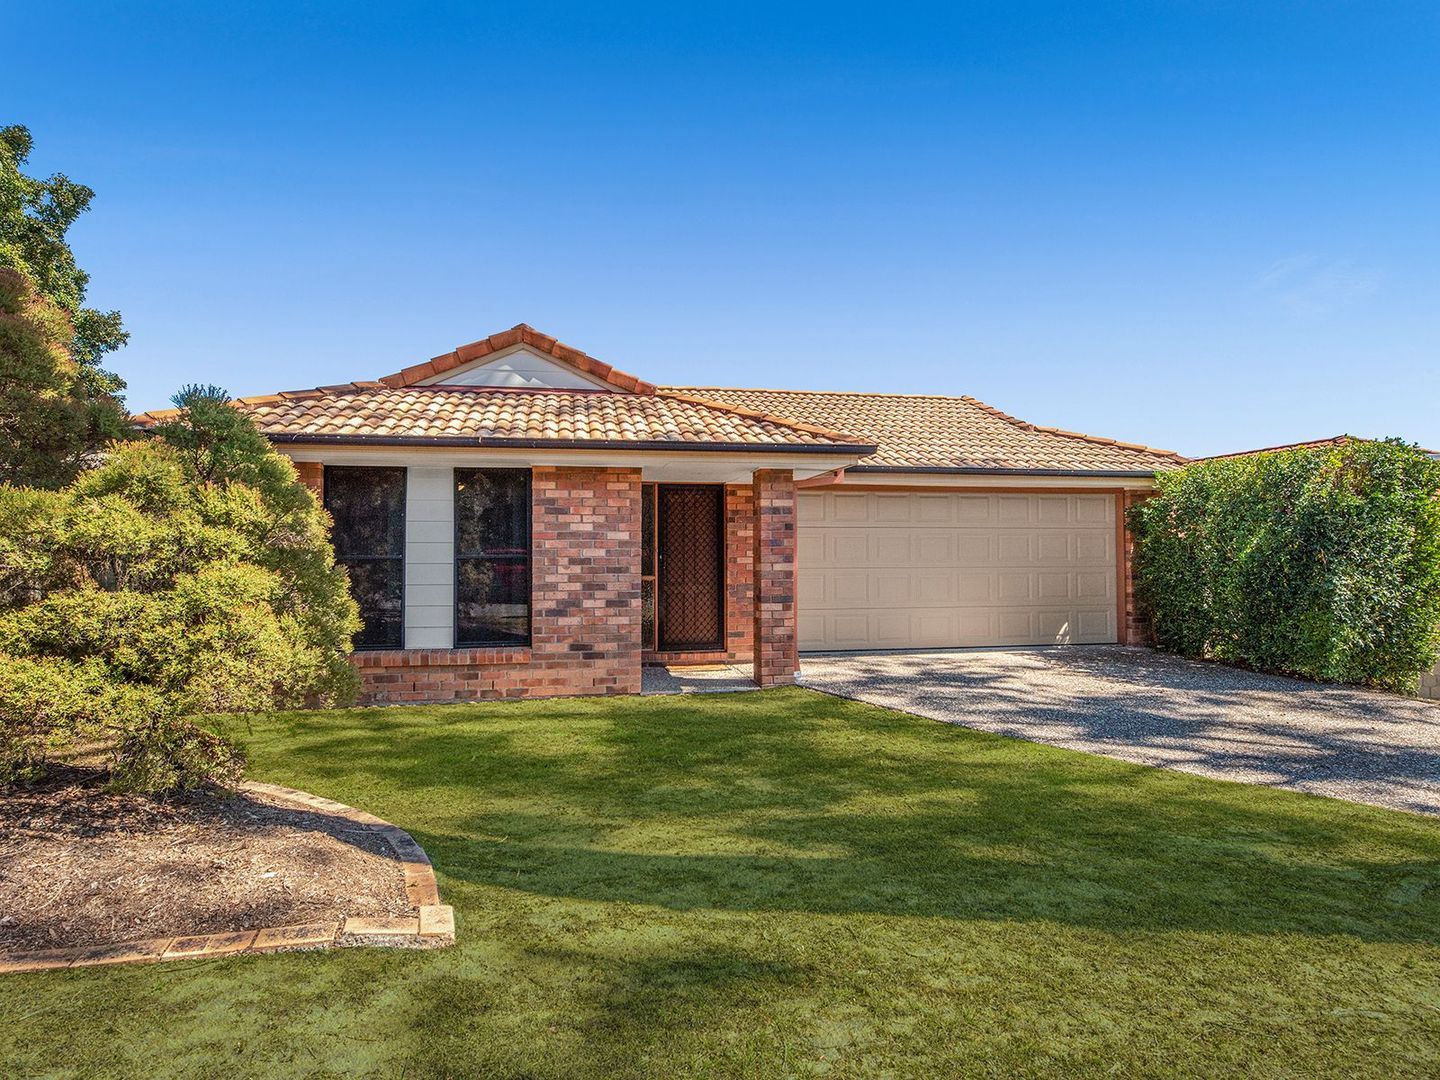 14 Warrumbungle St, Forest Lake QLD 4078, Image 0